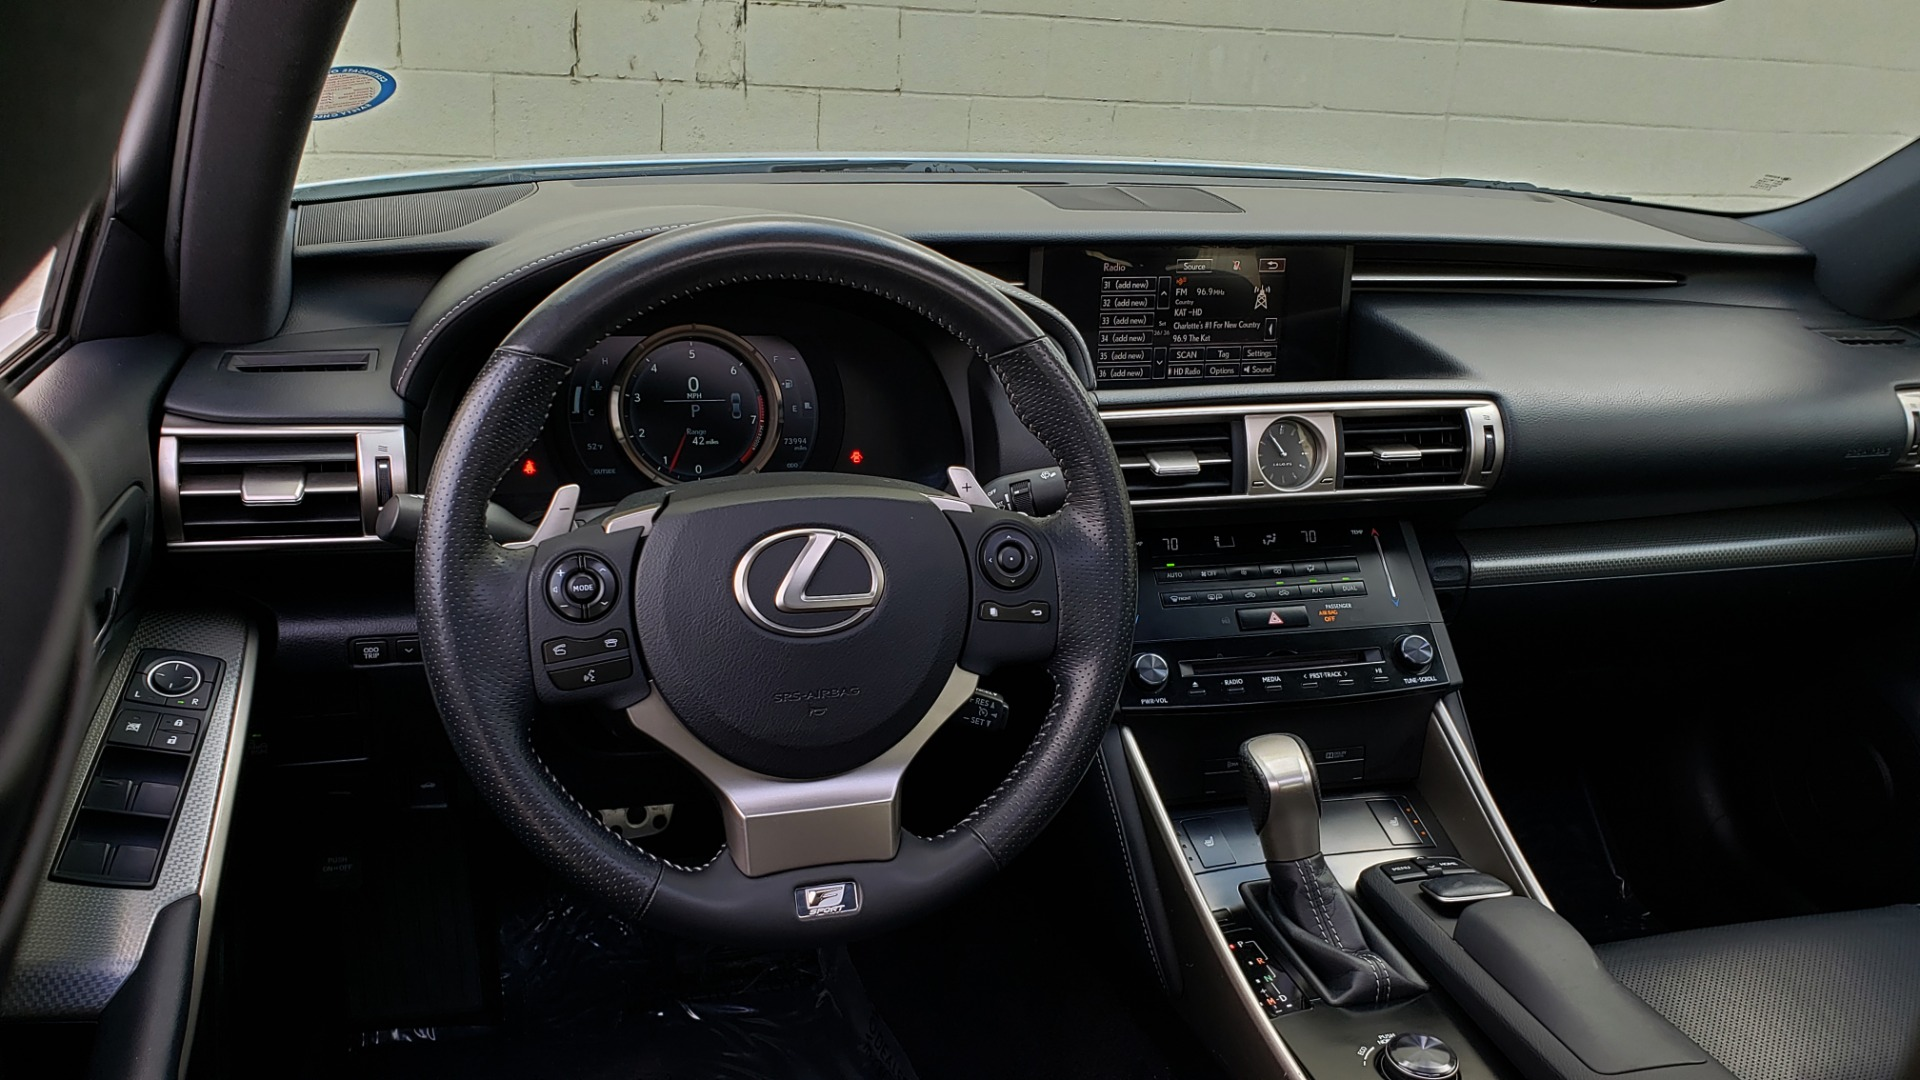 Used 2014 Lexus IS 250 F-SPORT / NAV / SUNROOF / REARVIEW / BSM for sale Sold at Formula Imports in Charlotte NC 28227 32